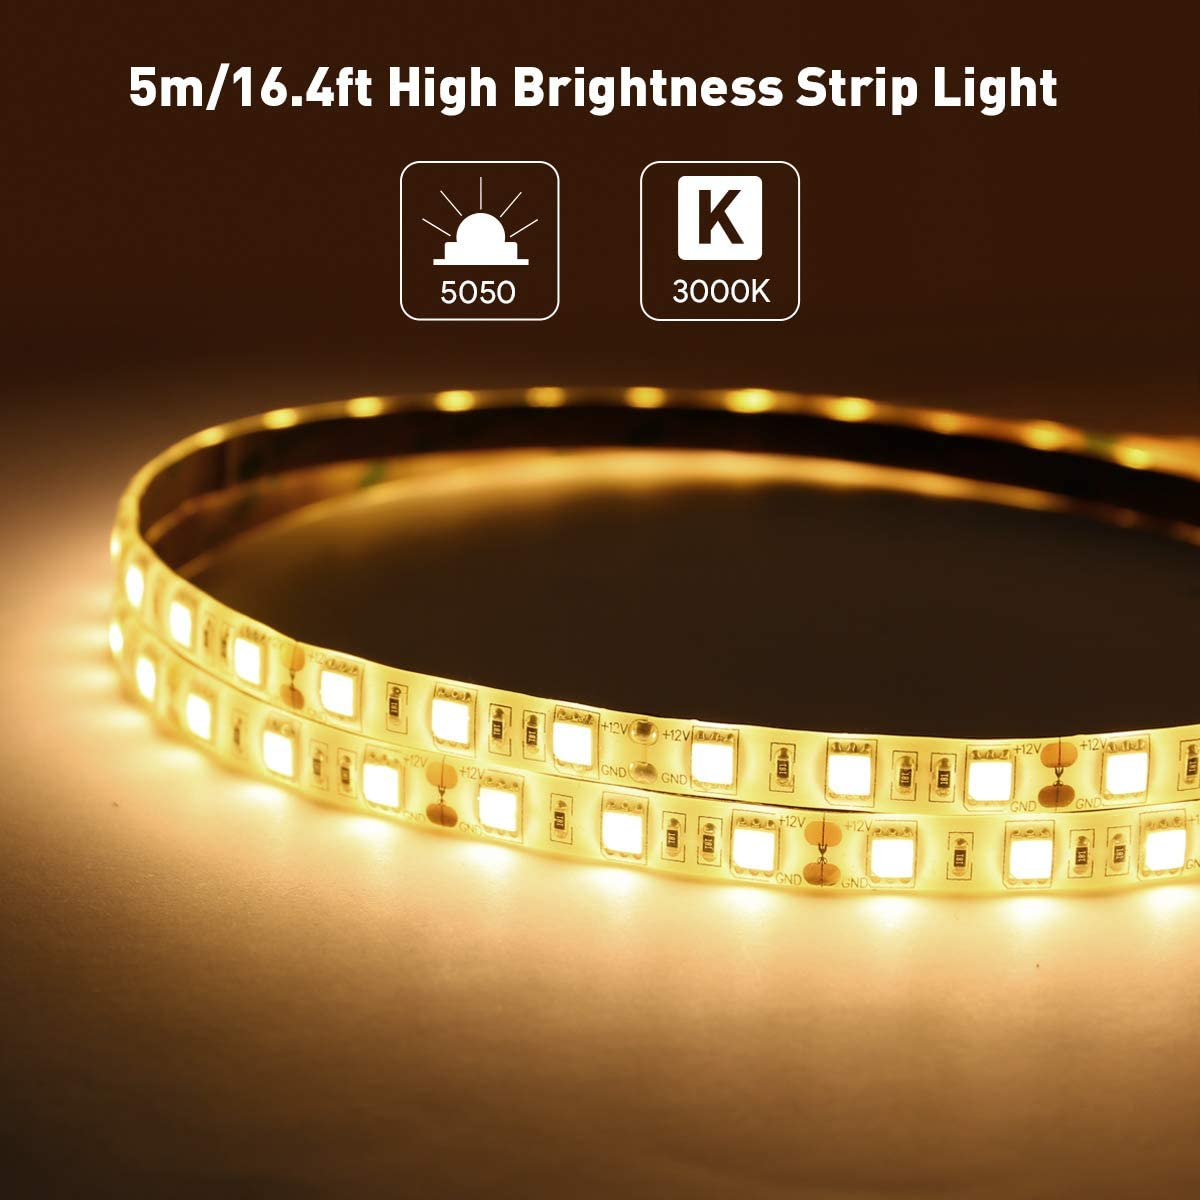 LE 12V LED Light Strip Waterproof Party Christmas and More Warm White 300 LEDs SMD 5050 5m Tape Light for Home Flexible Kitchen